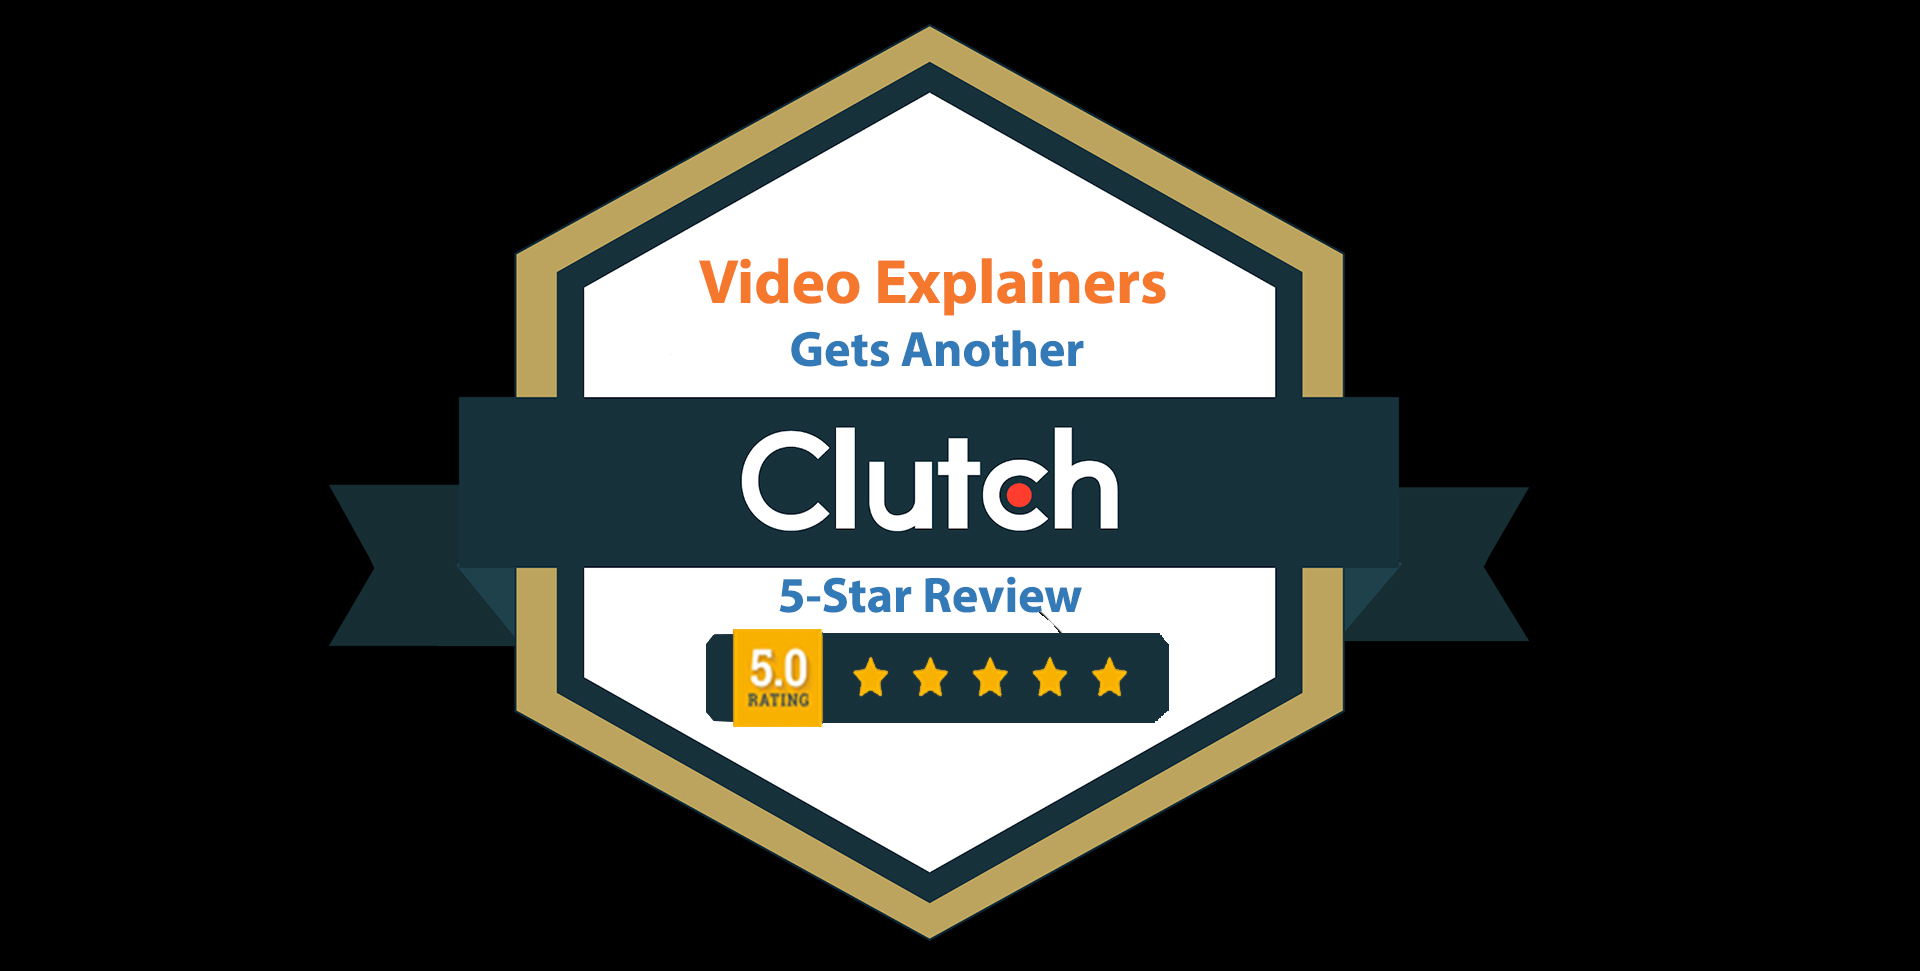 Video Explainers Adds Another 5-Star Review to Clutch Profile